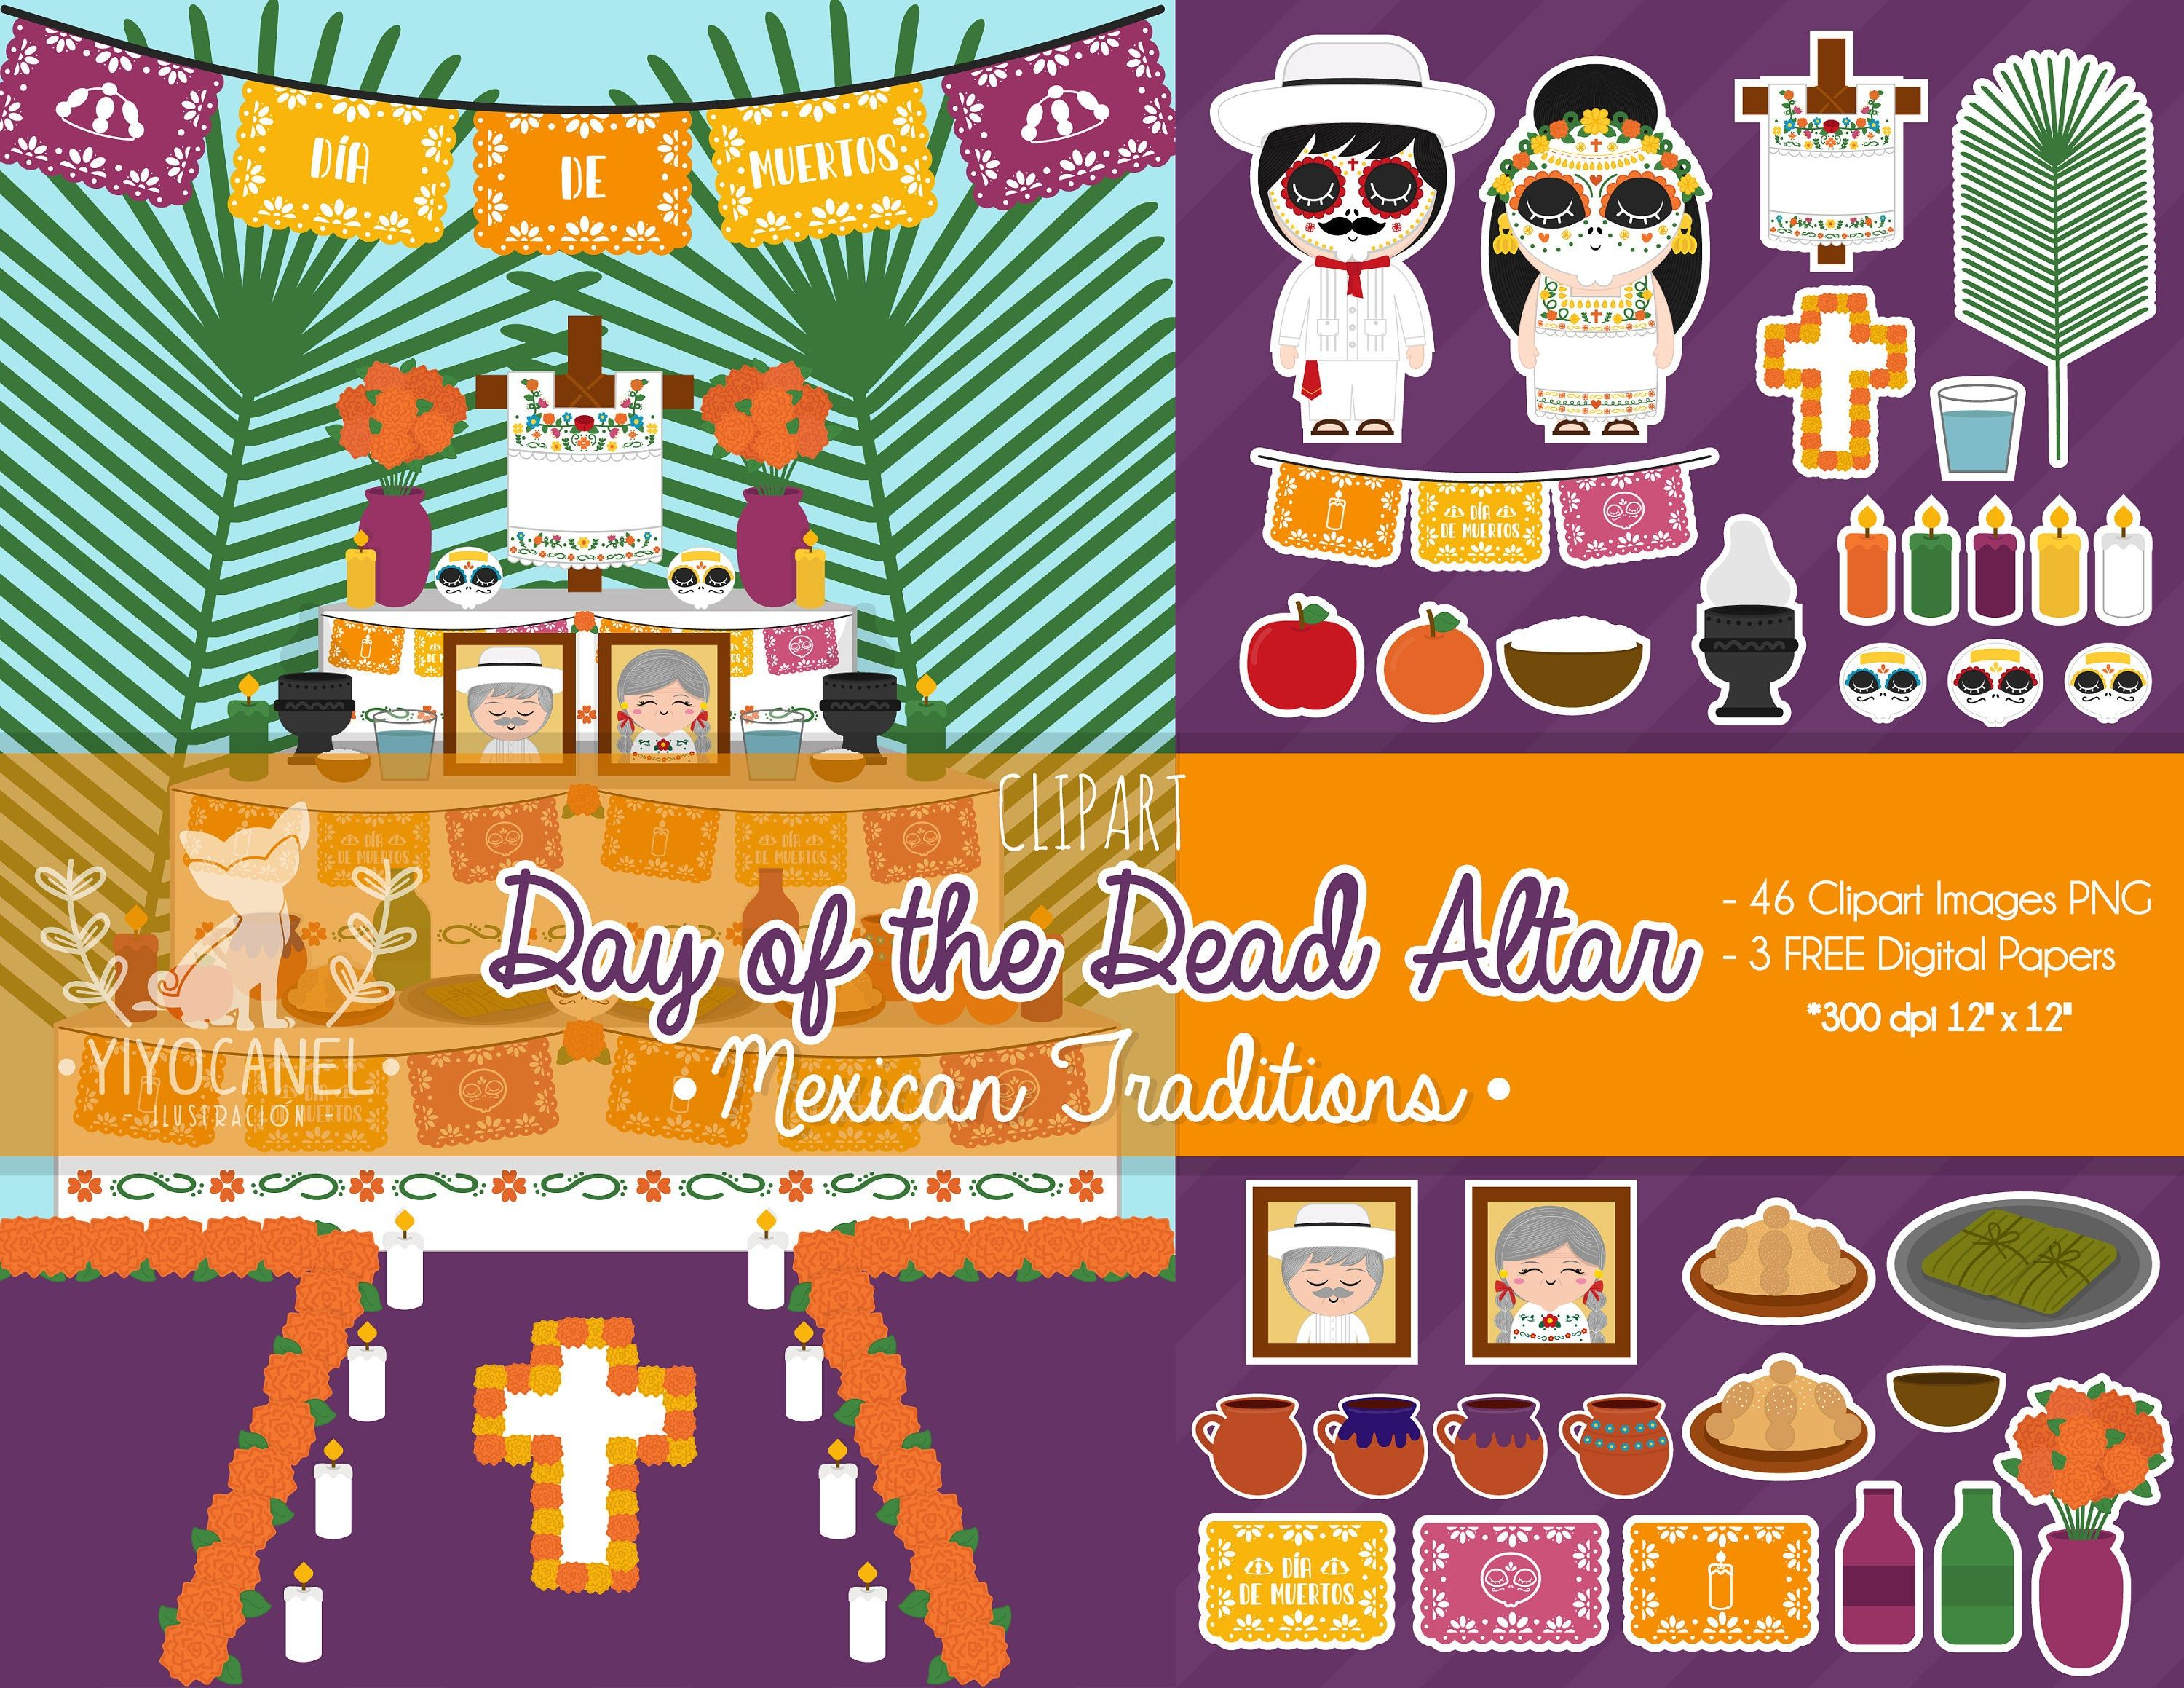 Day Of The Dead Clipart Mexican Altar Clipart Mexican Digital Paper Mexican Traditions Skulls Clipart Mexican Clipart Day Of The Dead In 2020 Clip Art Digital Paper Mexican Traditions